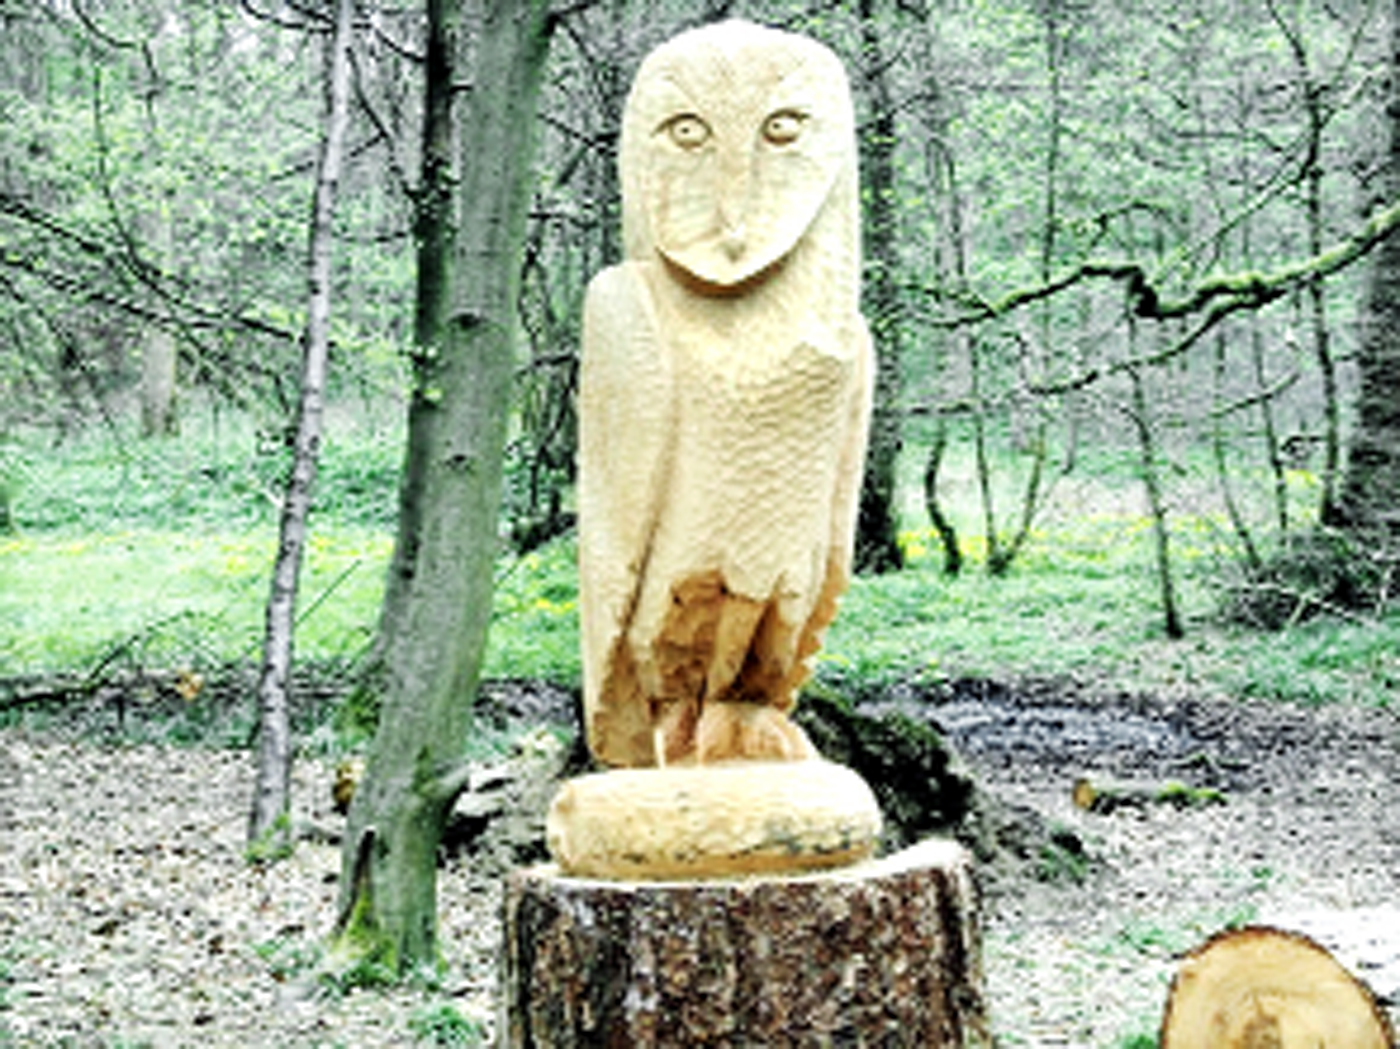 Mystery sculptor adds magic to woodlands in Chorley